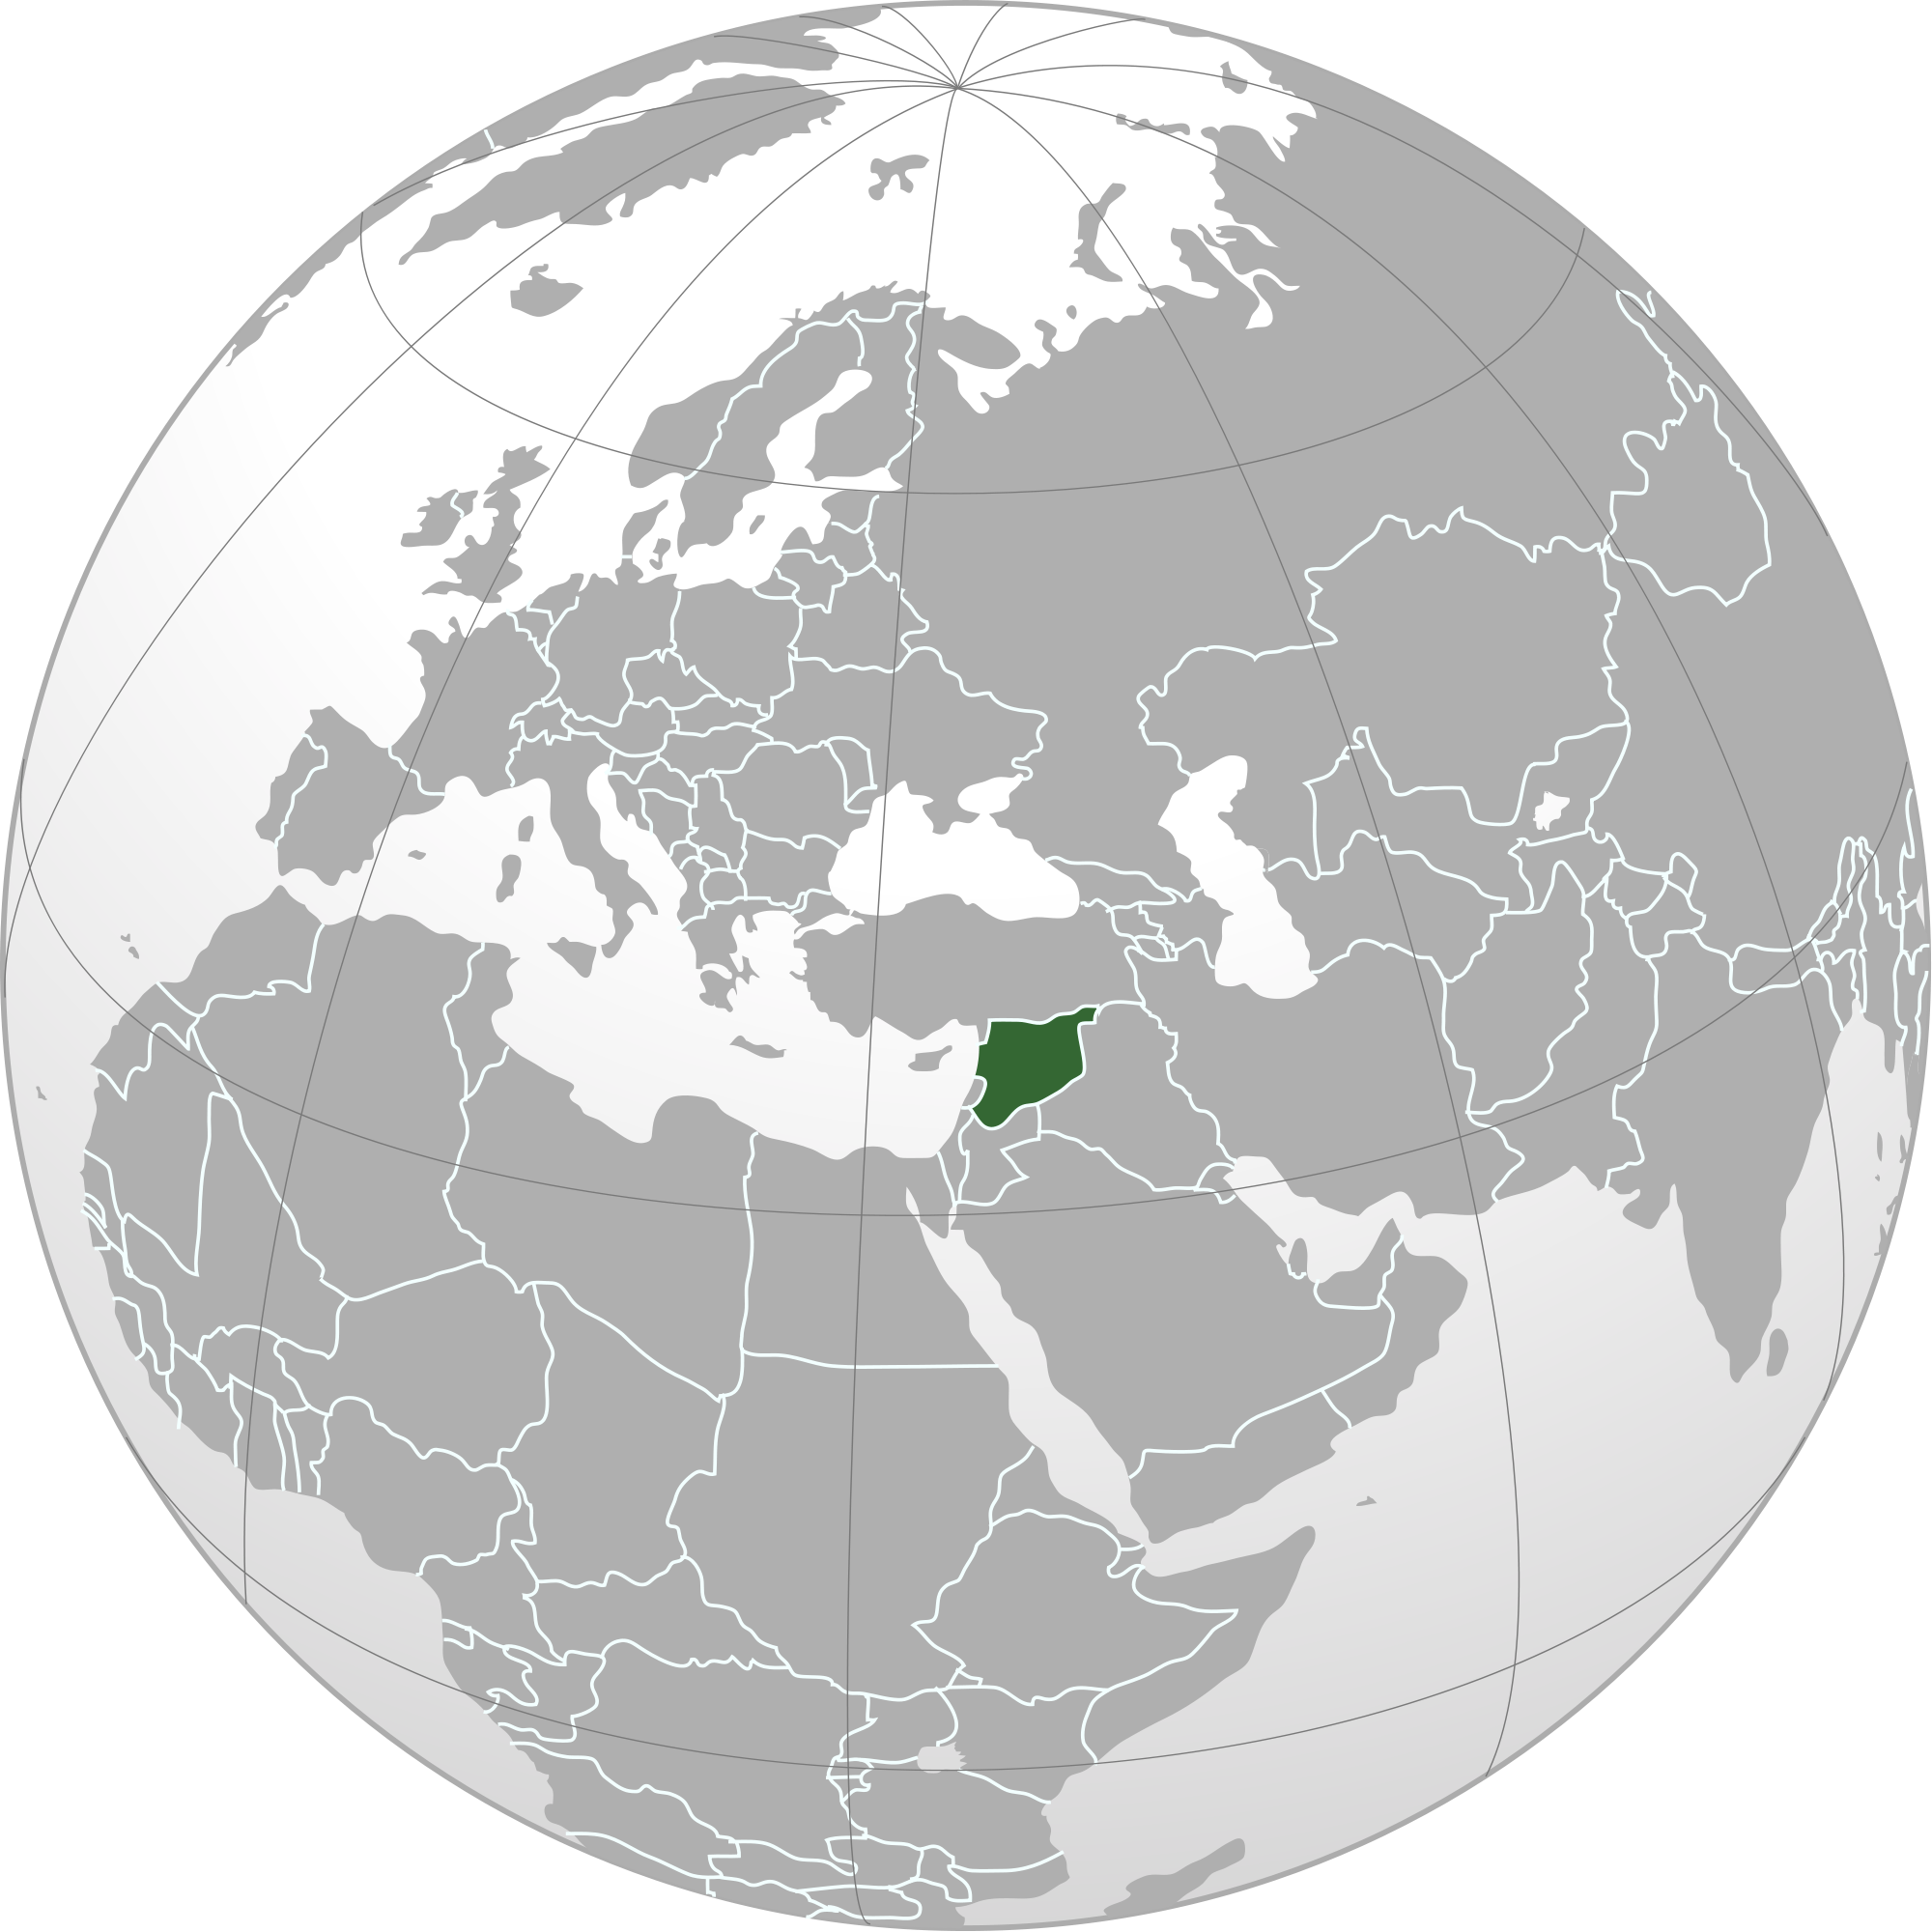 Location of the Syria in the World Map